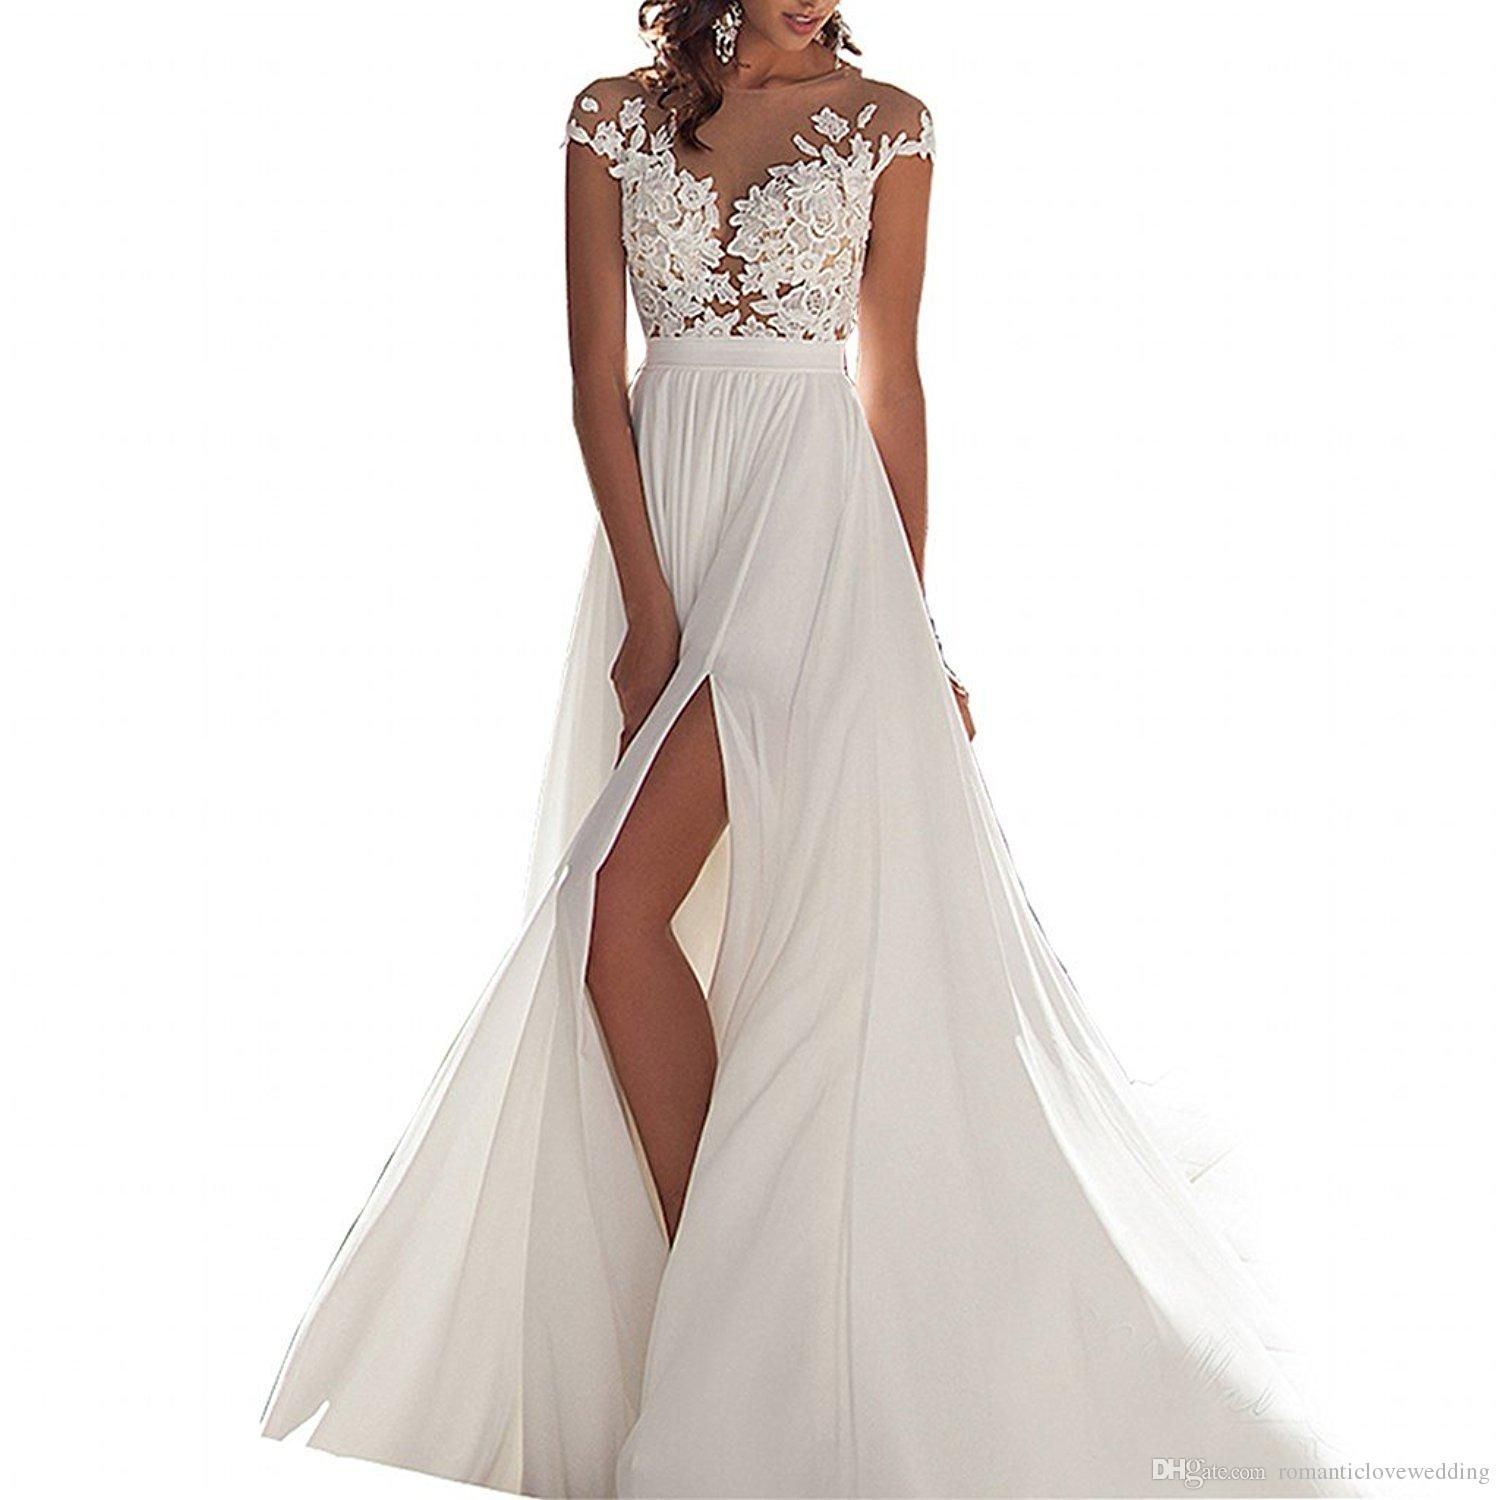 Dhgate Wedding Dresses Reviews